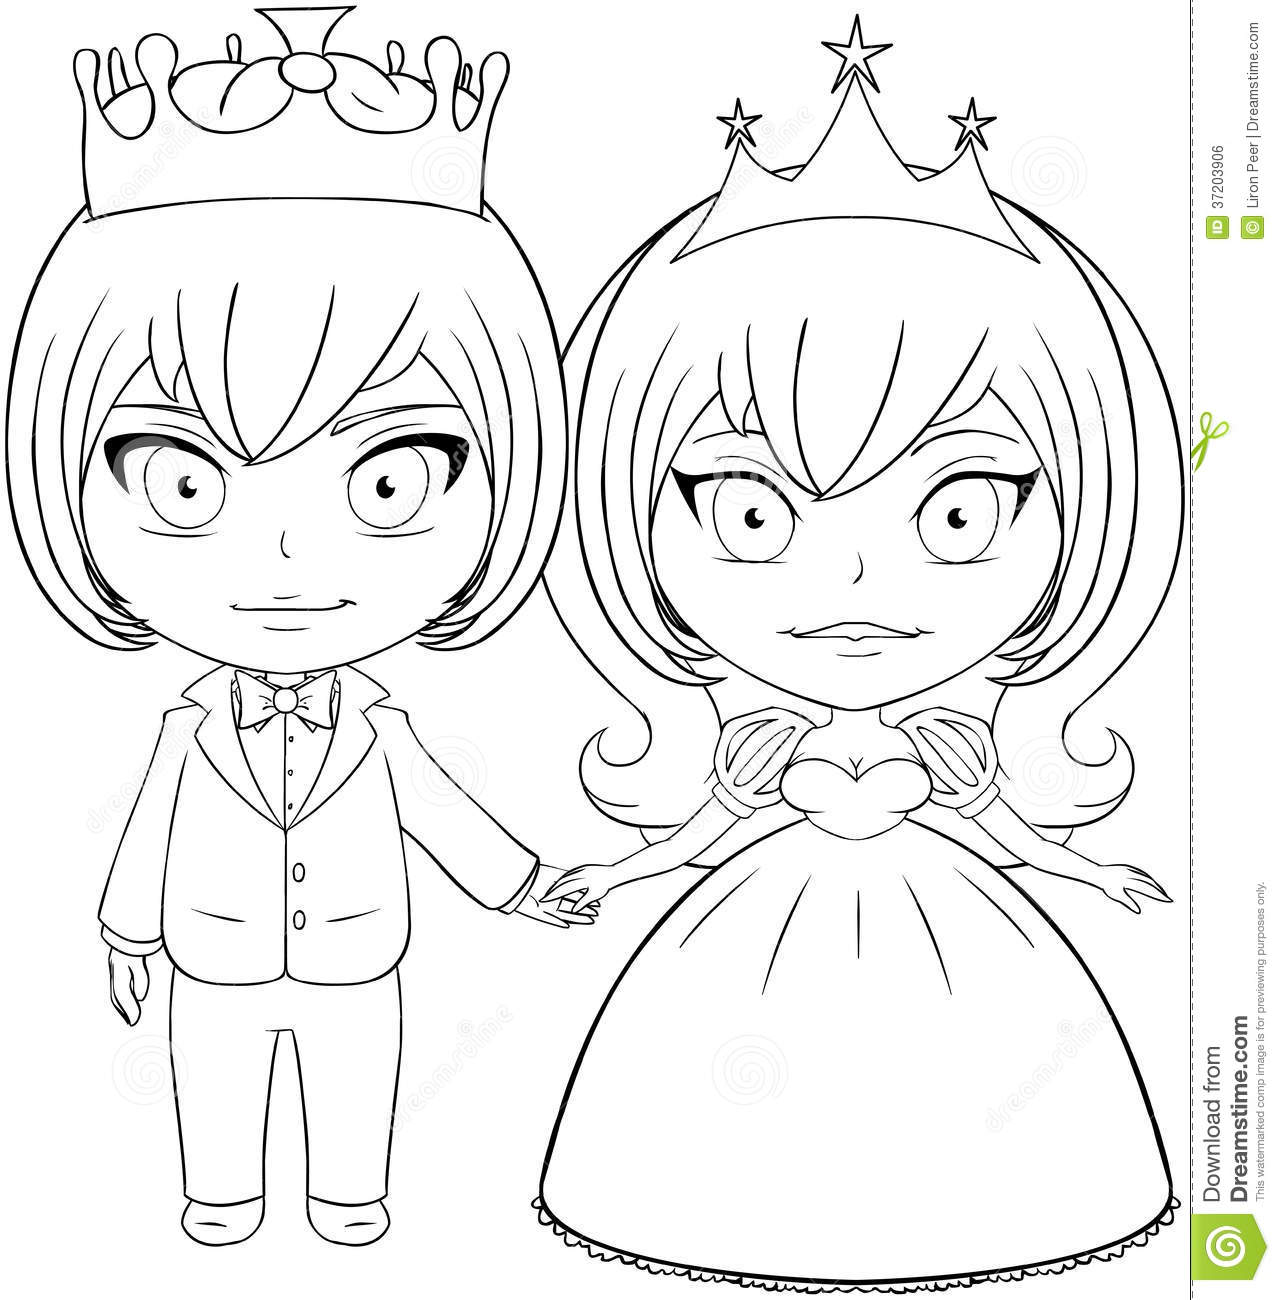 Prince And Princess Coloring Page 2 Stock Vector - Image